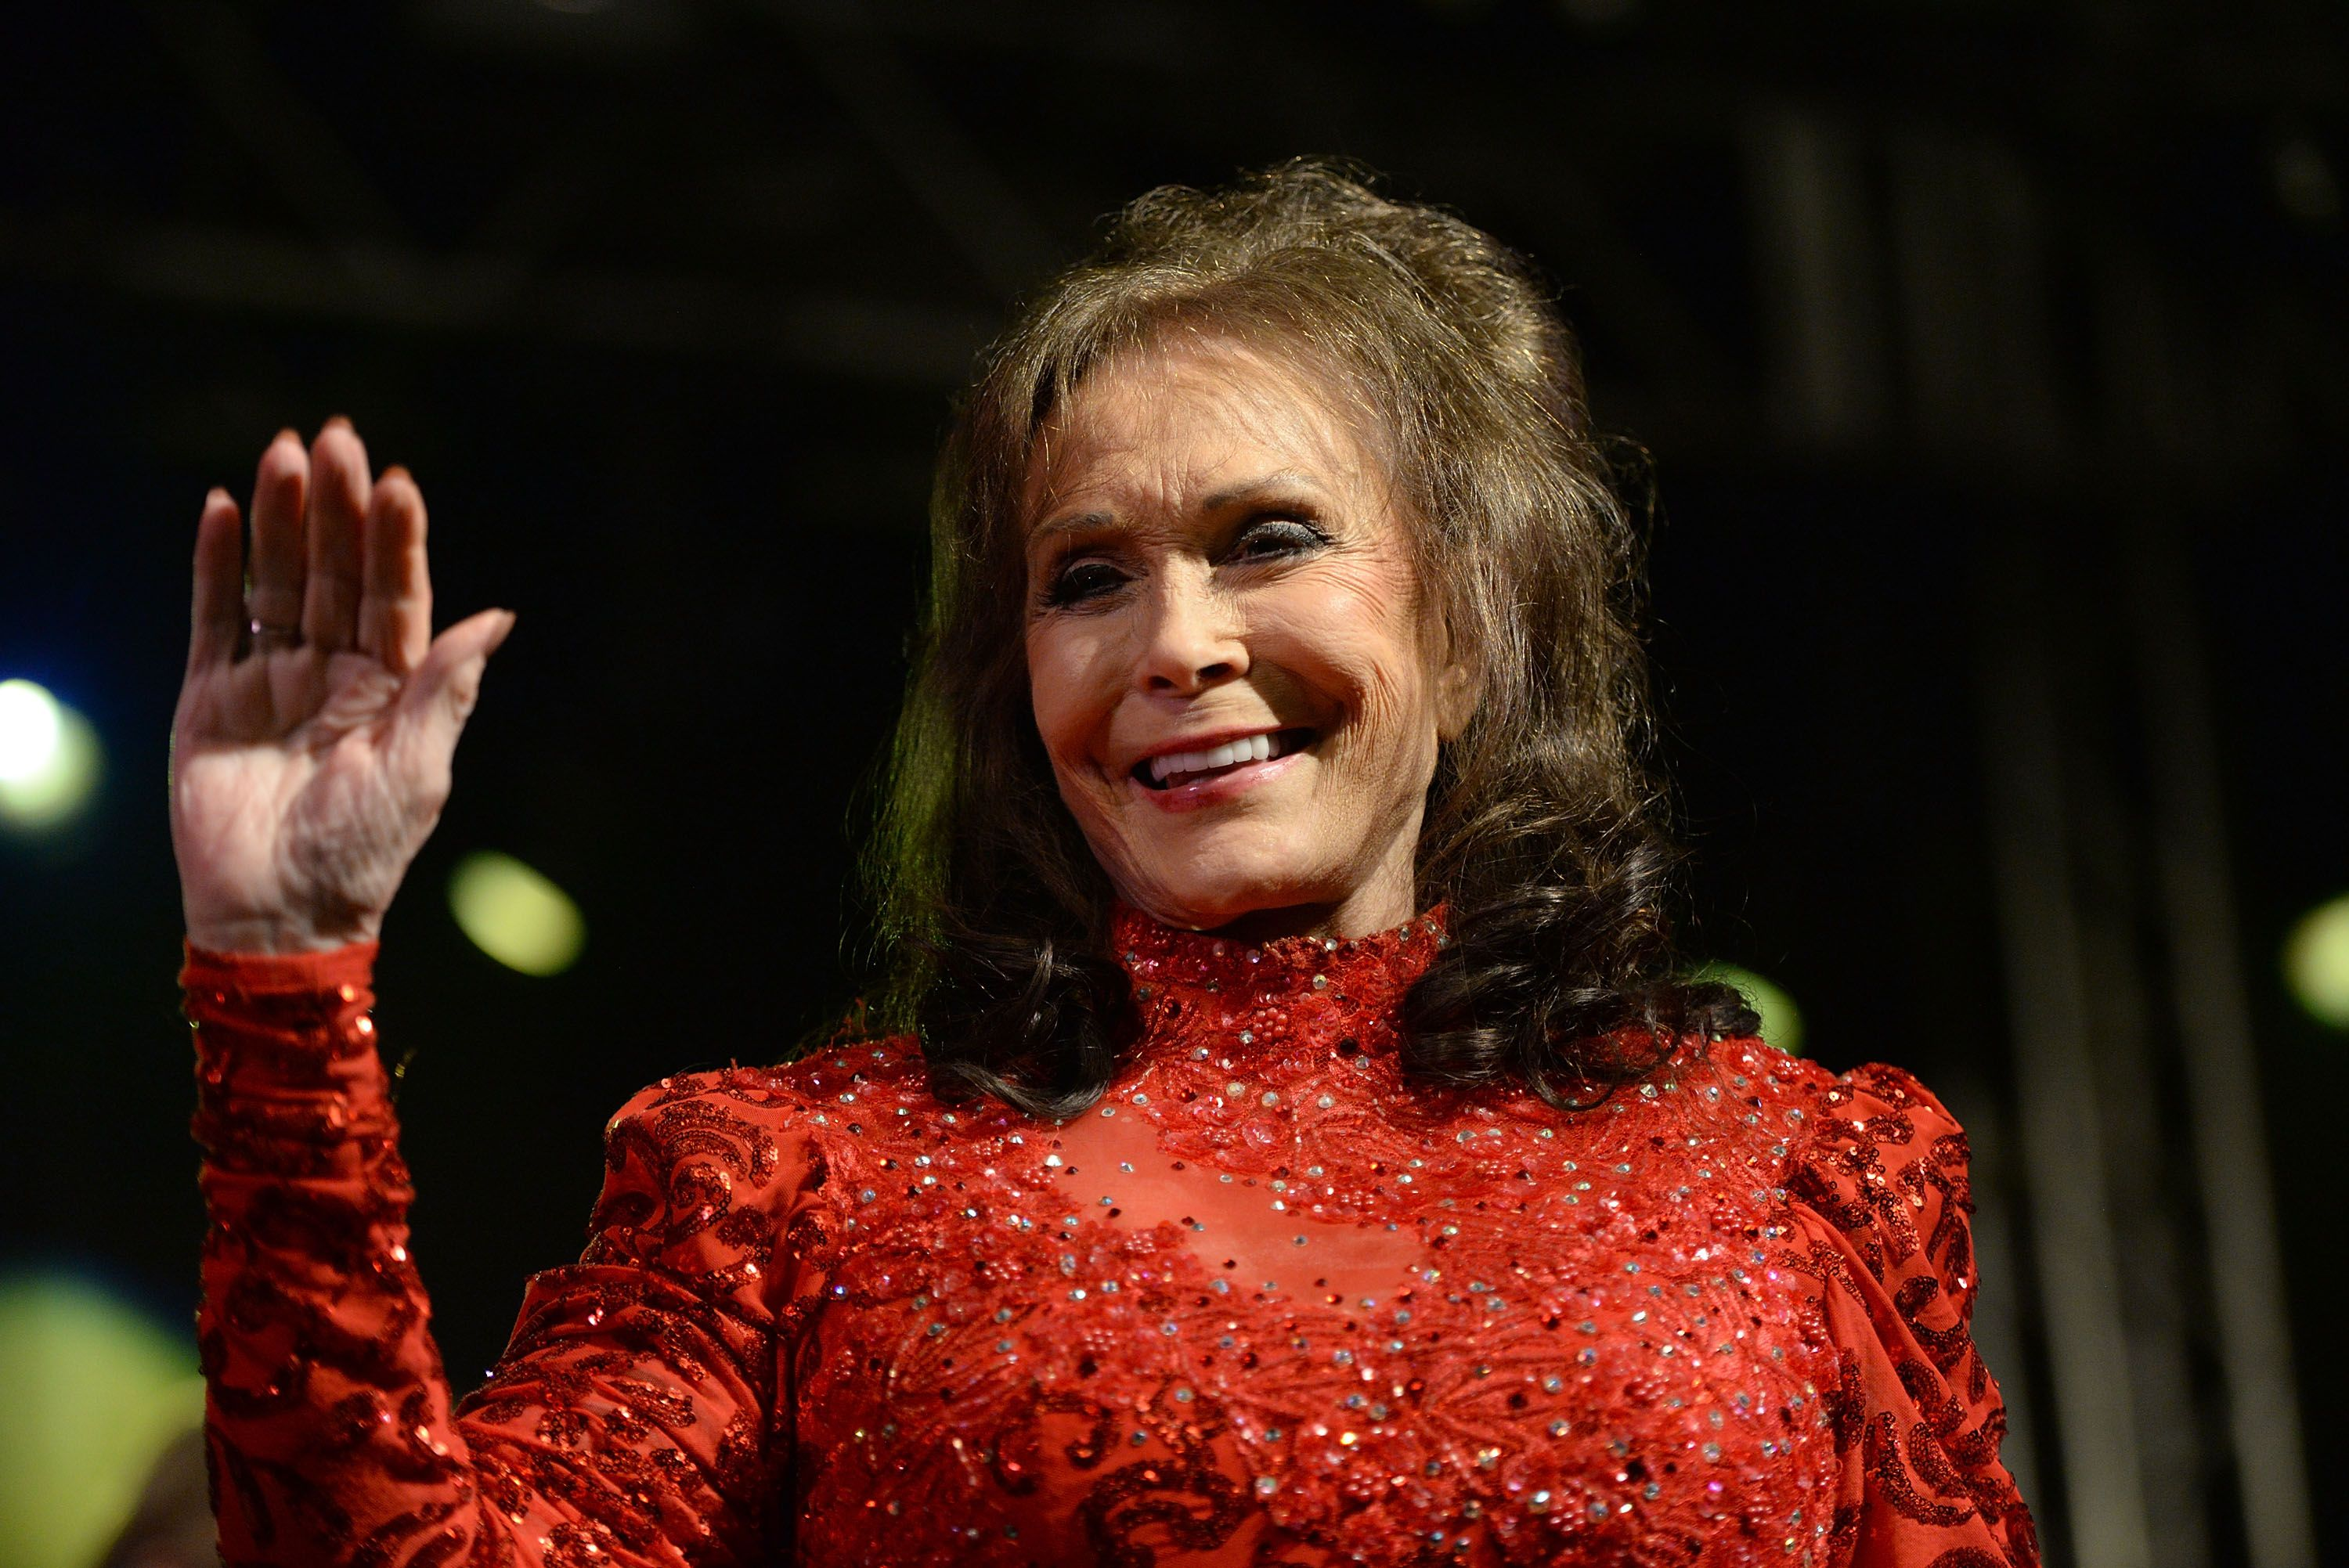 Loretta Lynn performs onstage at Stubbs on March 17, 2016 in Austin, Texas.   Source: Getty Images